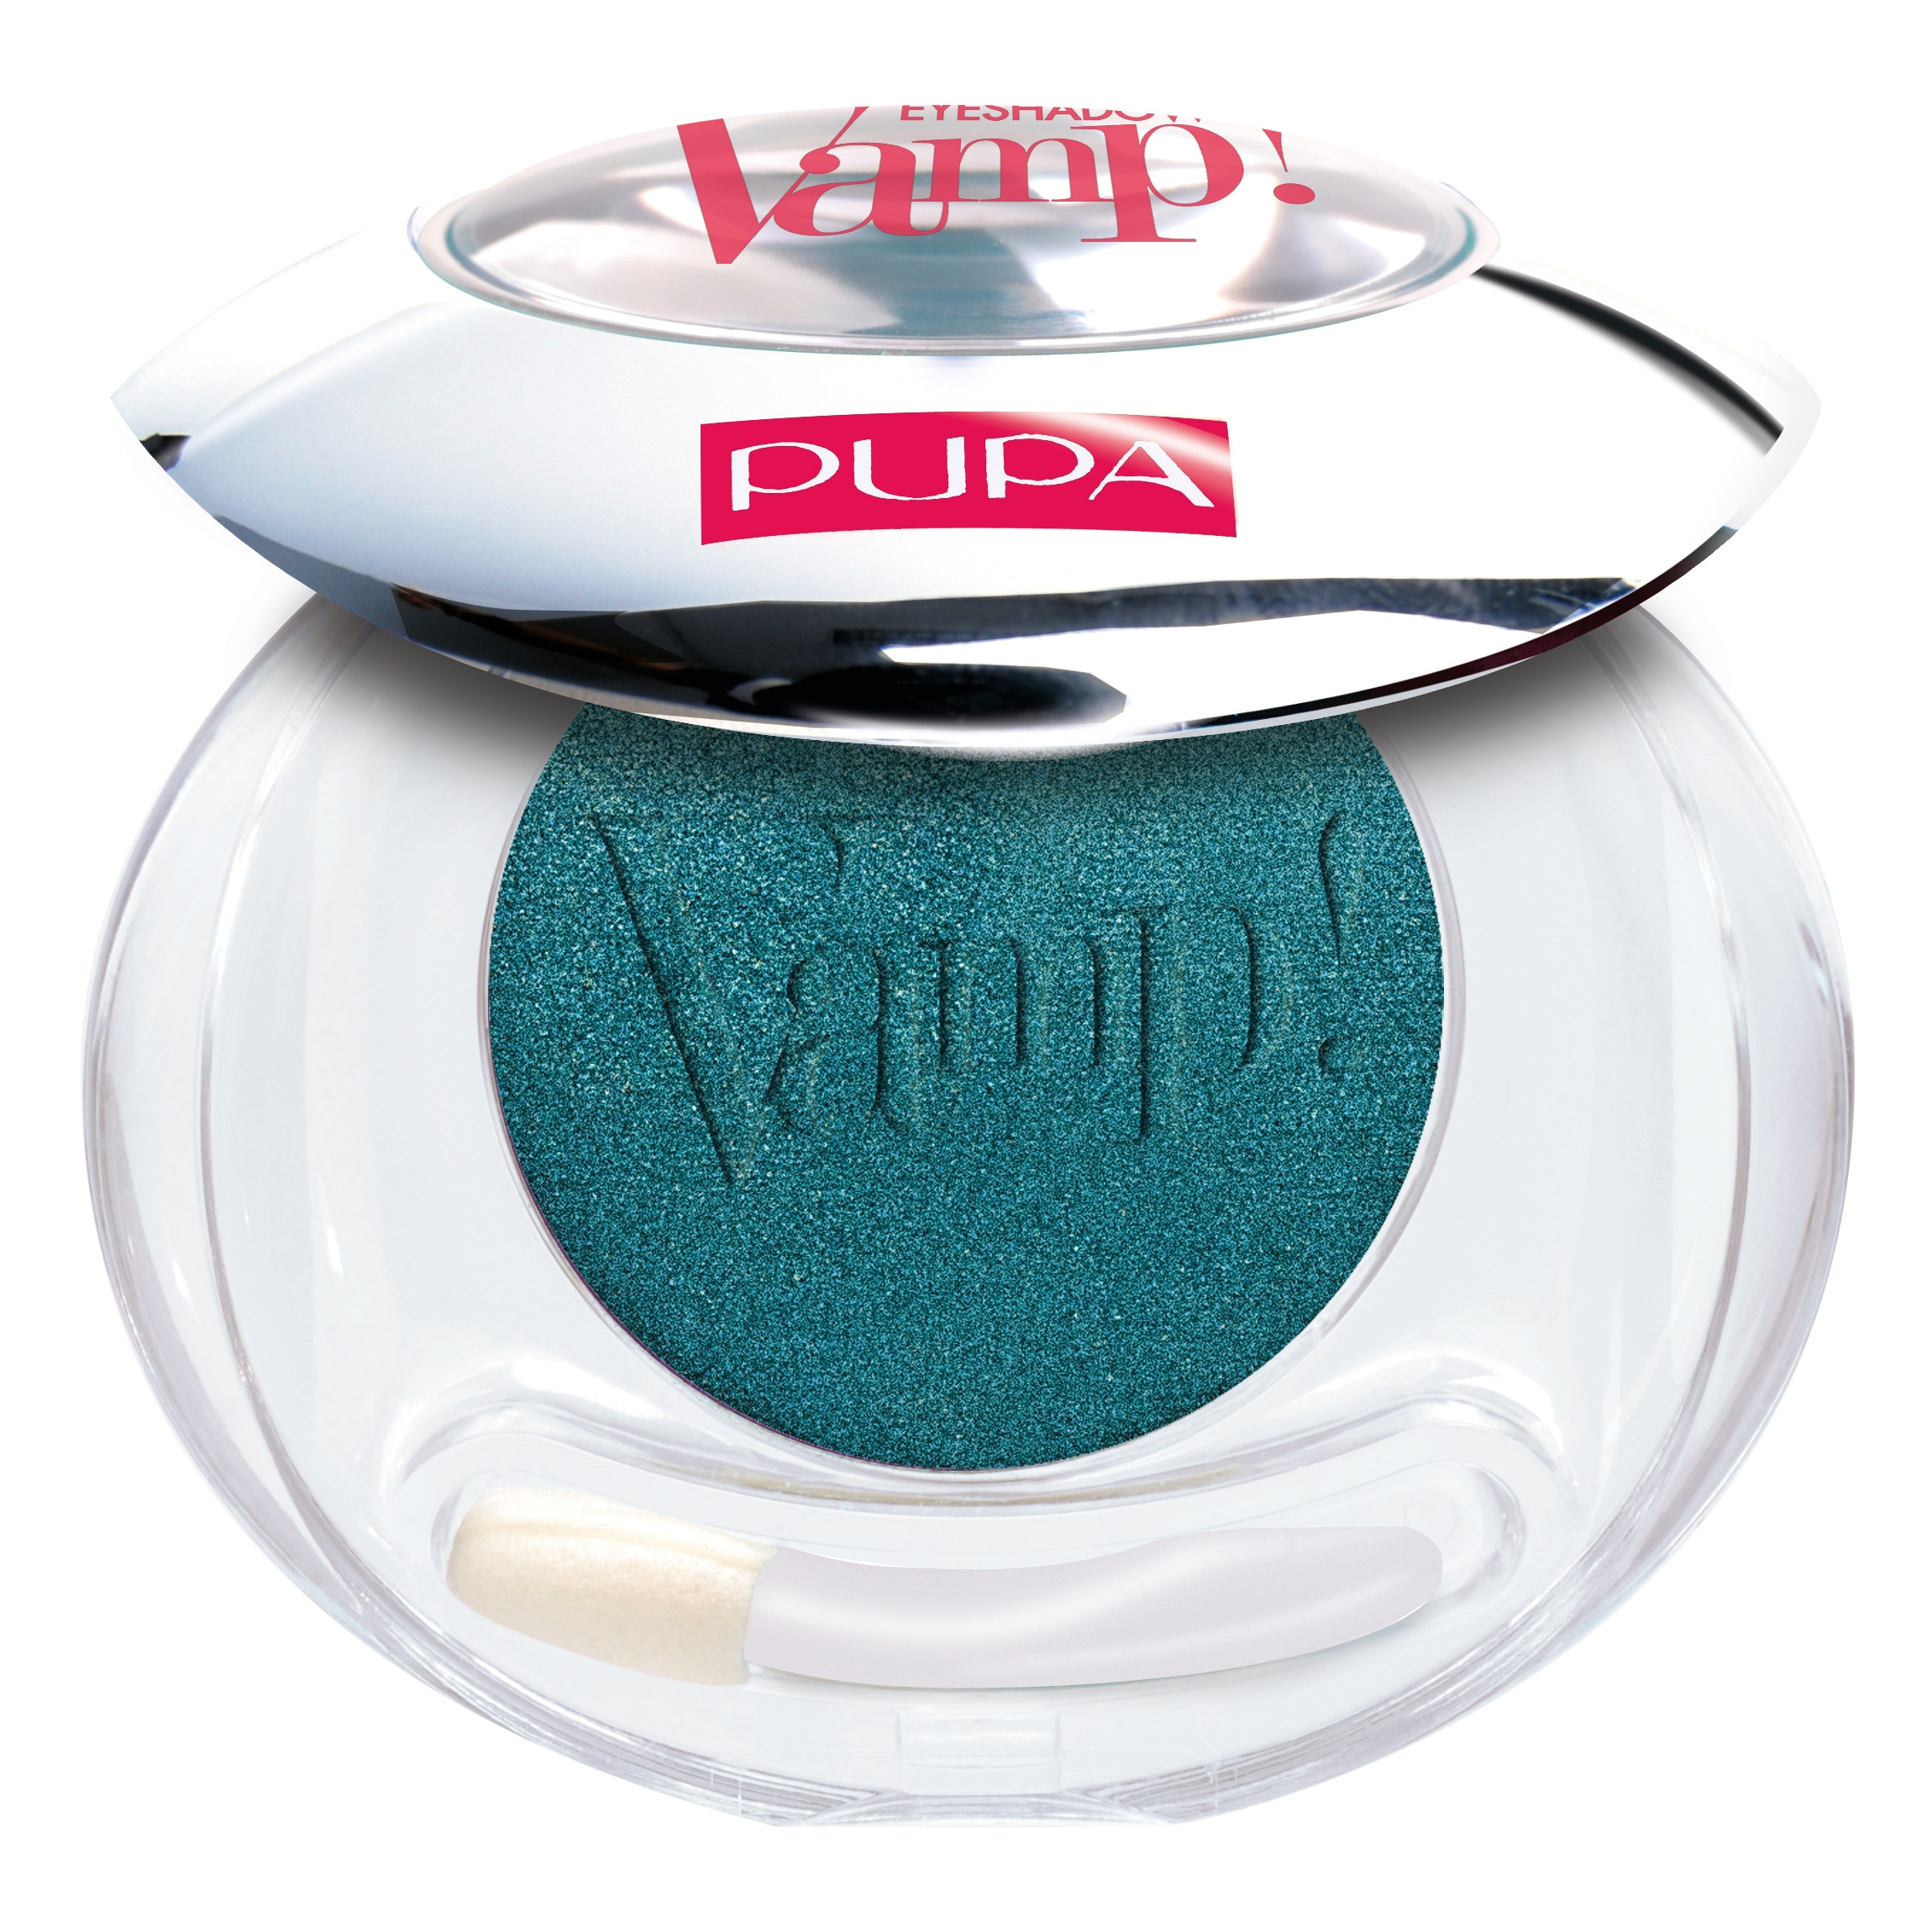 Pupa Vamp Compact Eyeshadow ombretto compatto colore puro n 304 Tropical Green Satin